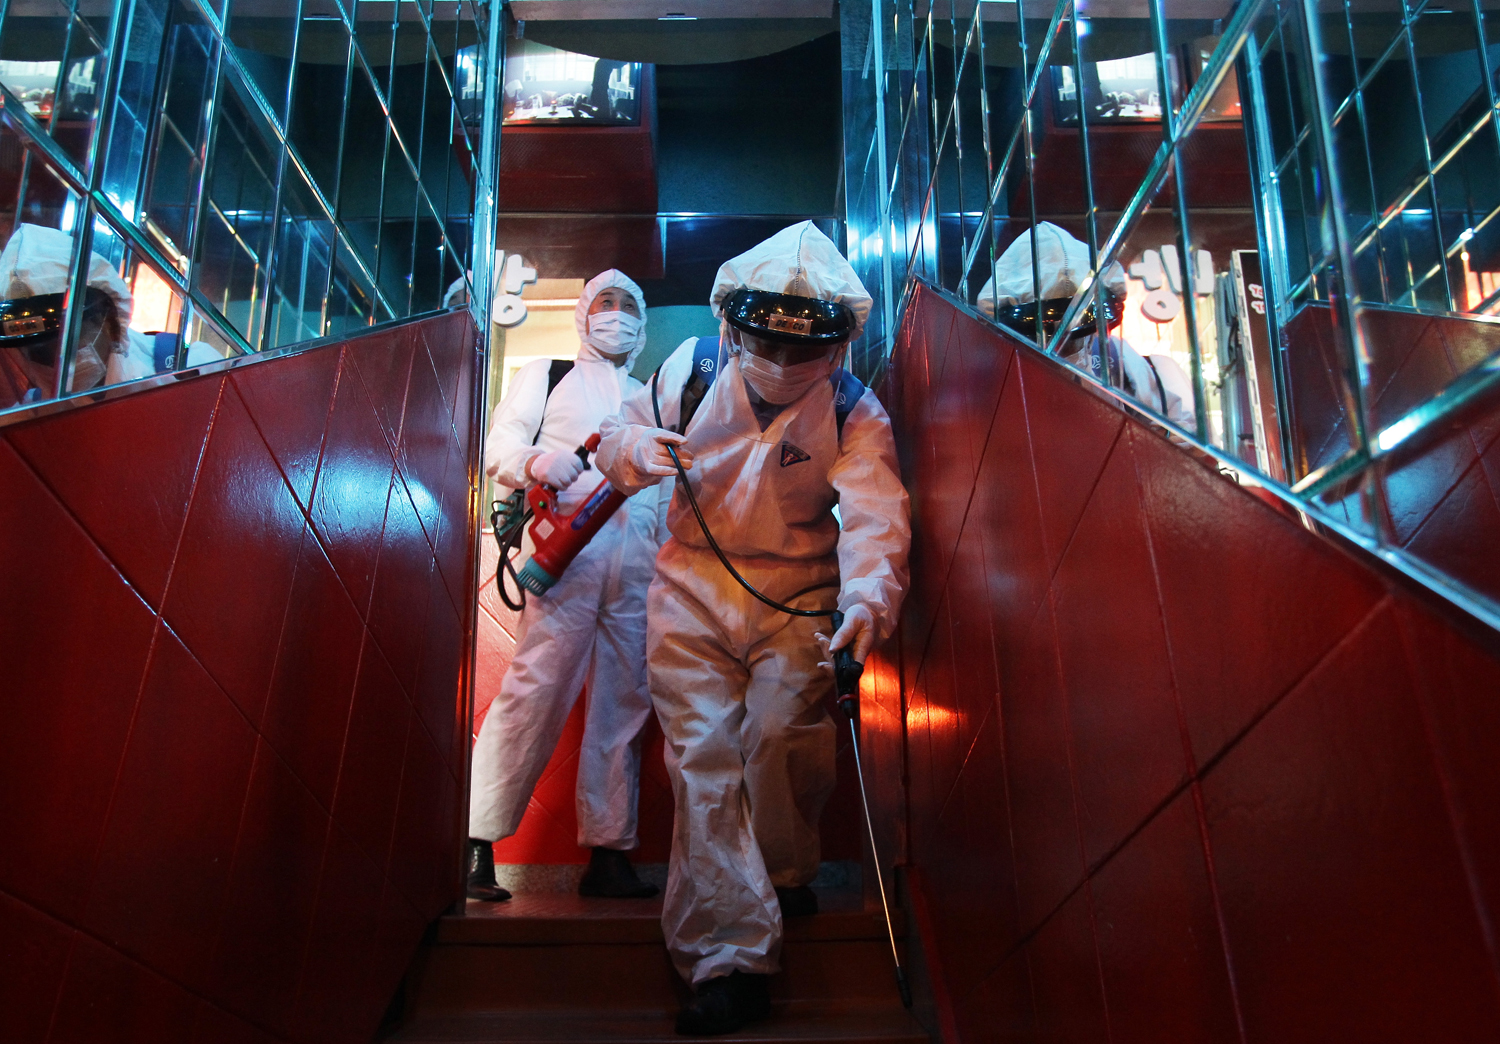 Disinfection workers wearing protective clothing spray anti-septic solution in a karaoke parlor on June 16, 2015 in Seoul, South Korea.